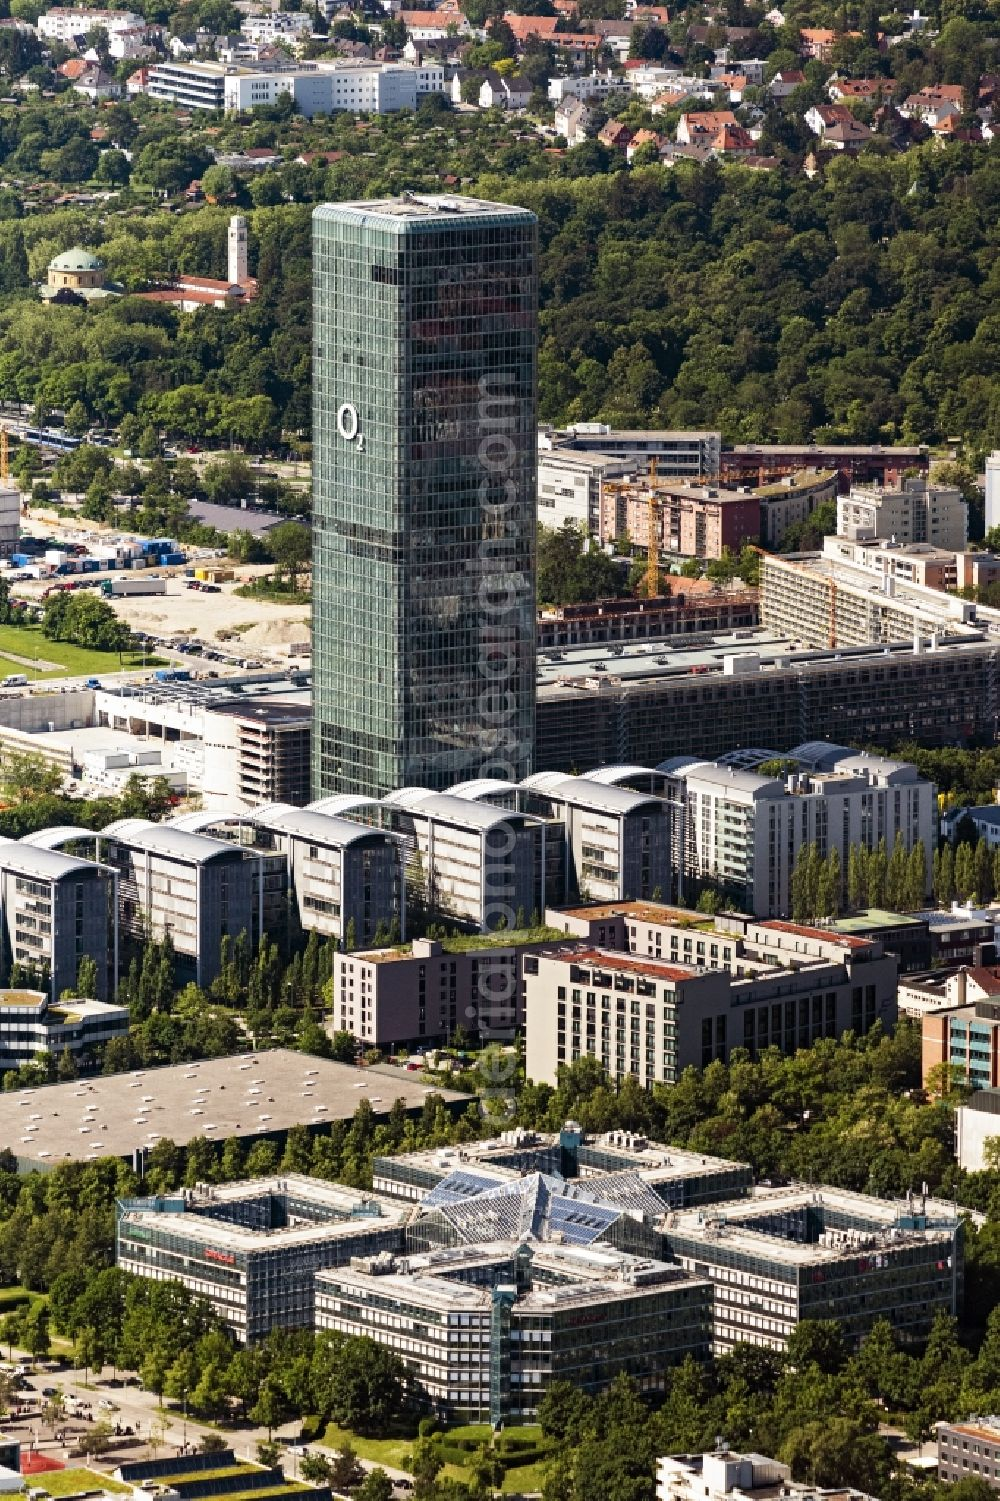 Aerial photograph München - The headquarters Uptown of Telefonica Germany and Astellas Pharma on Georg Brauchle Ring in Munich in the state of Bavaria. The telecommunication company is seated in the glas tower with the 02 logo. The pharmaceutical company is in the complex with glas arches